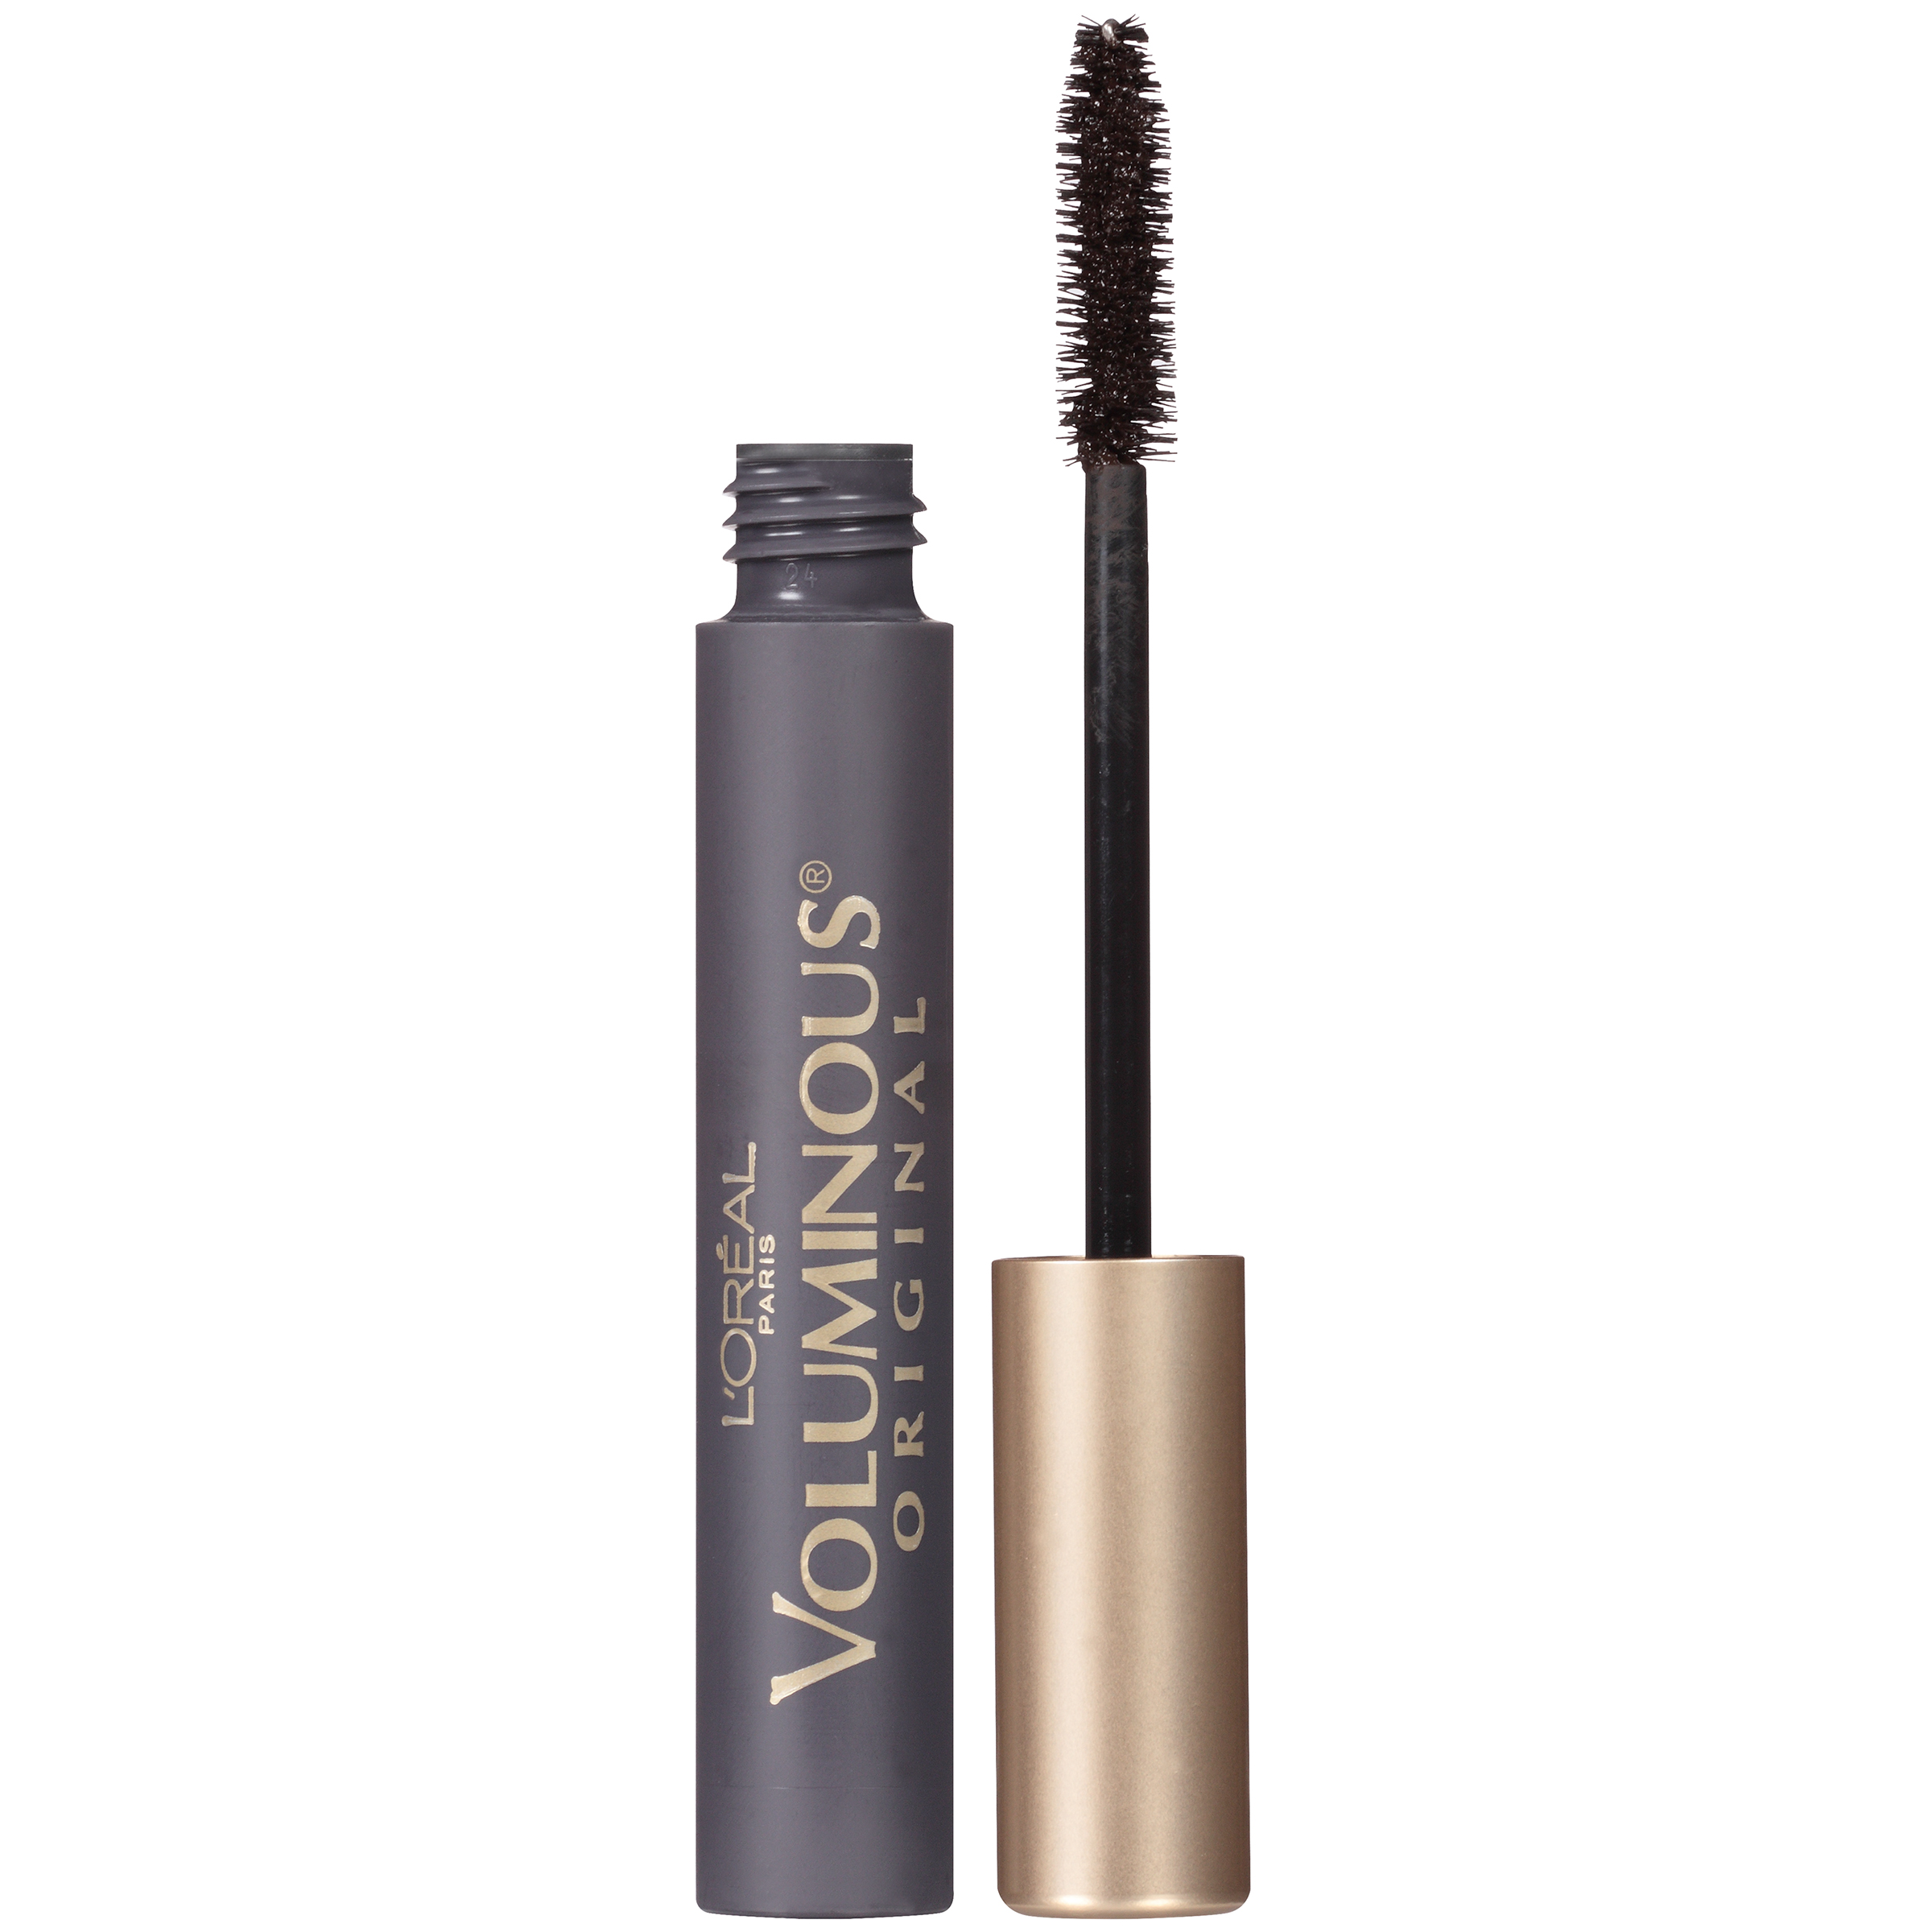 L'Oreal Paris Voluminous Original Washable Bold Eye Mascara, Black, 0.28 fl. oz.